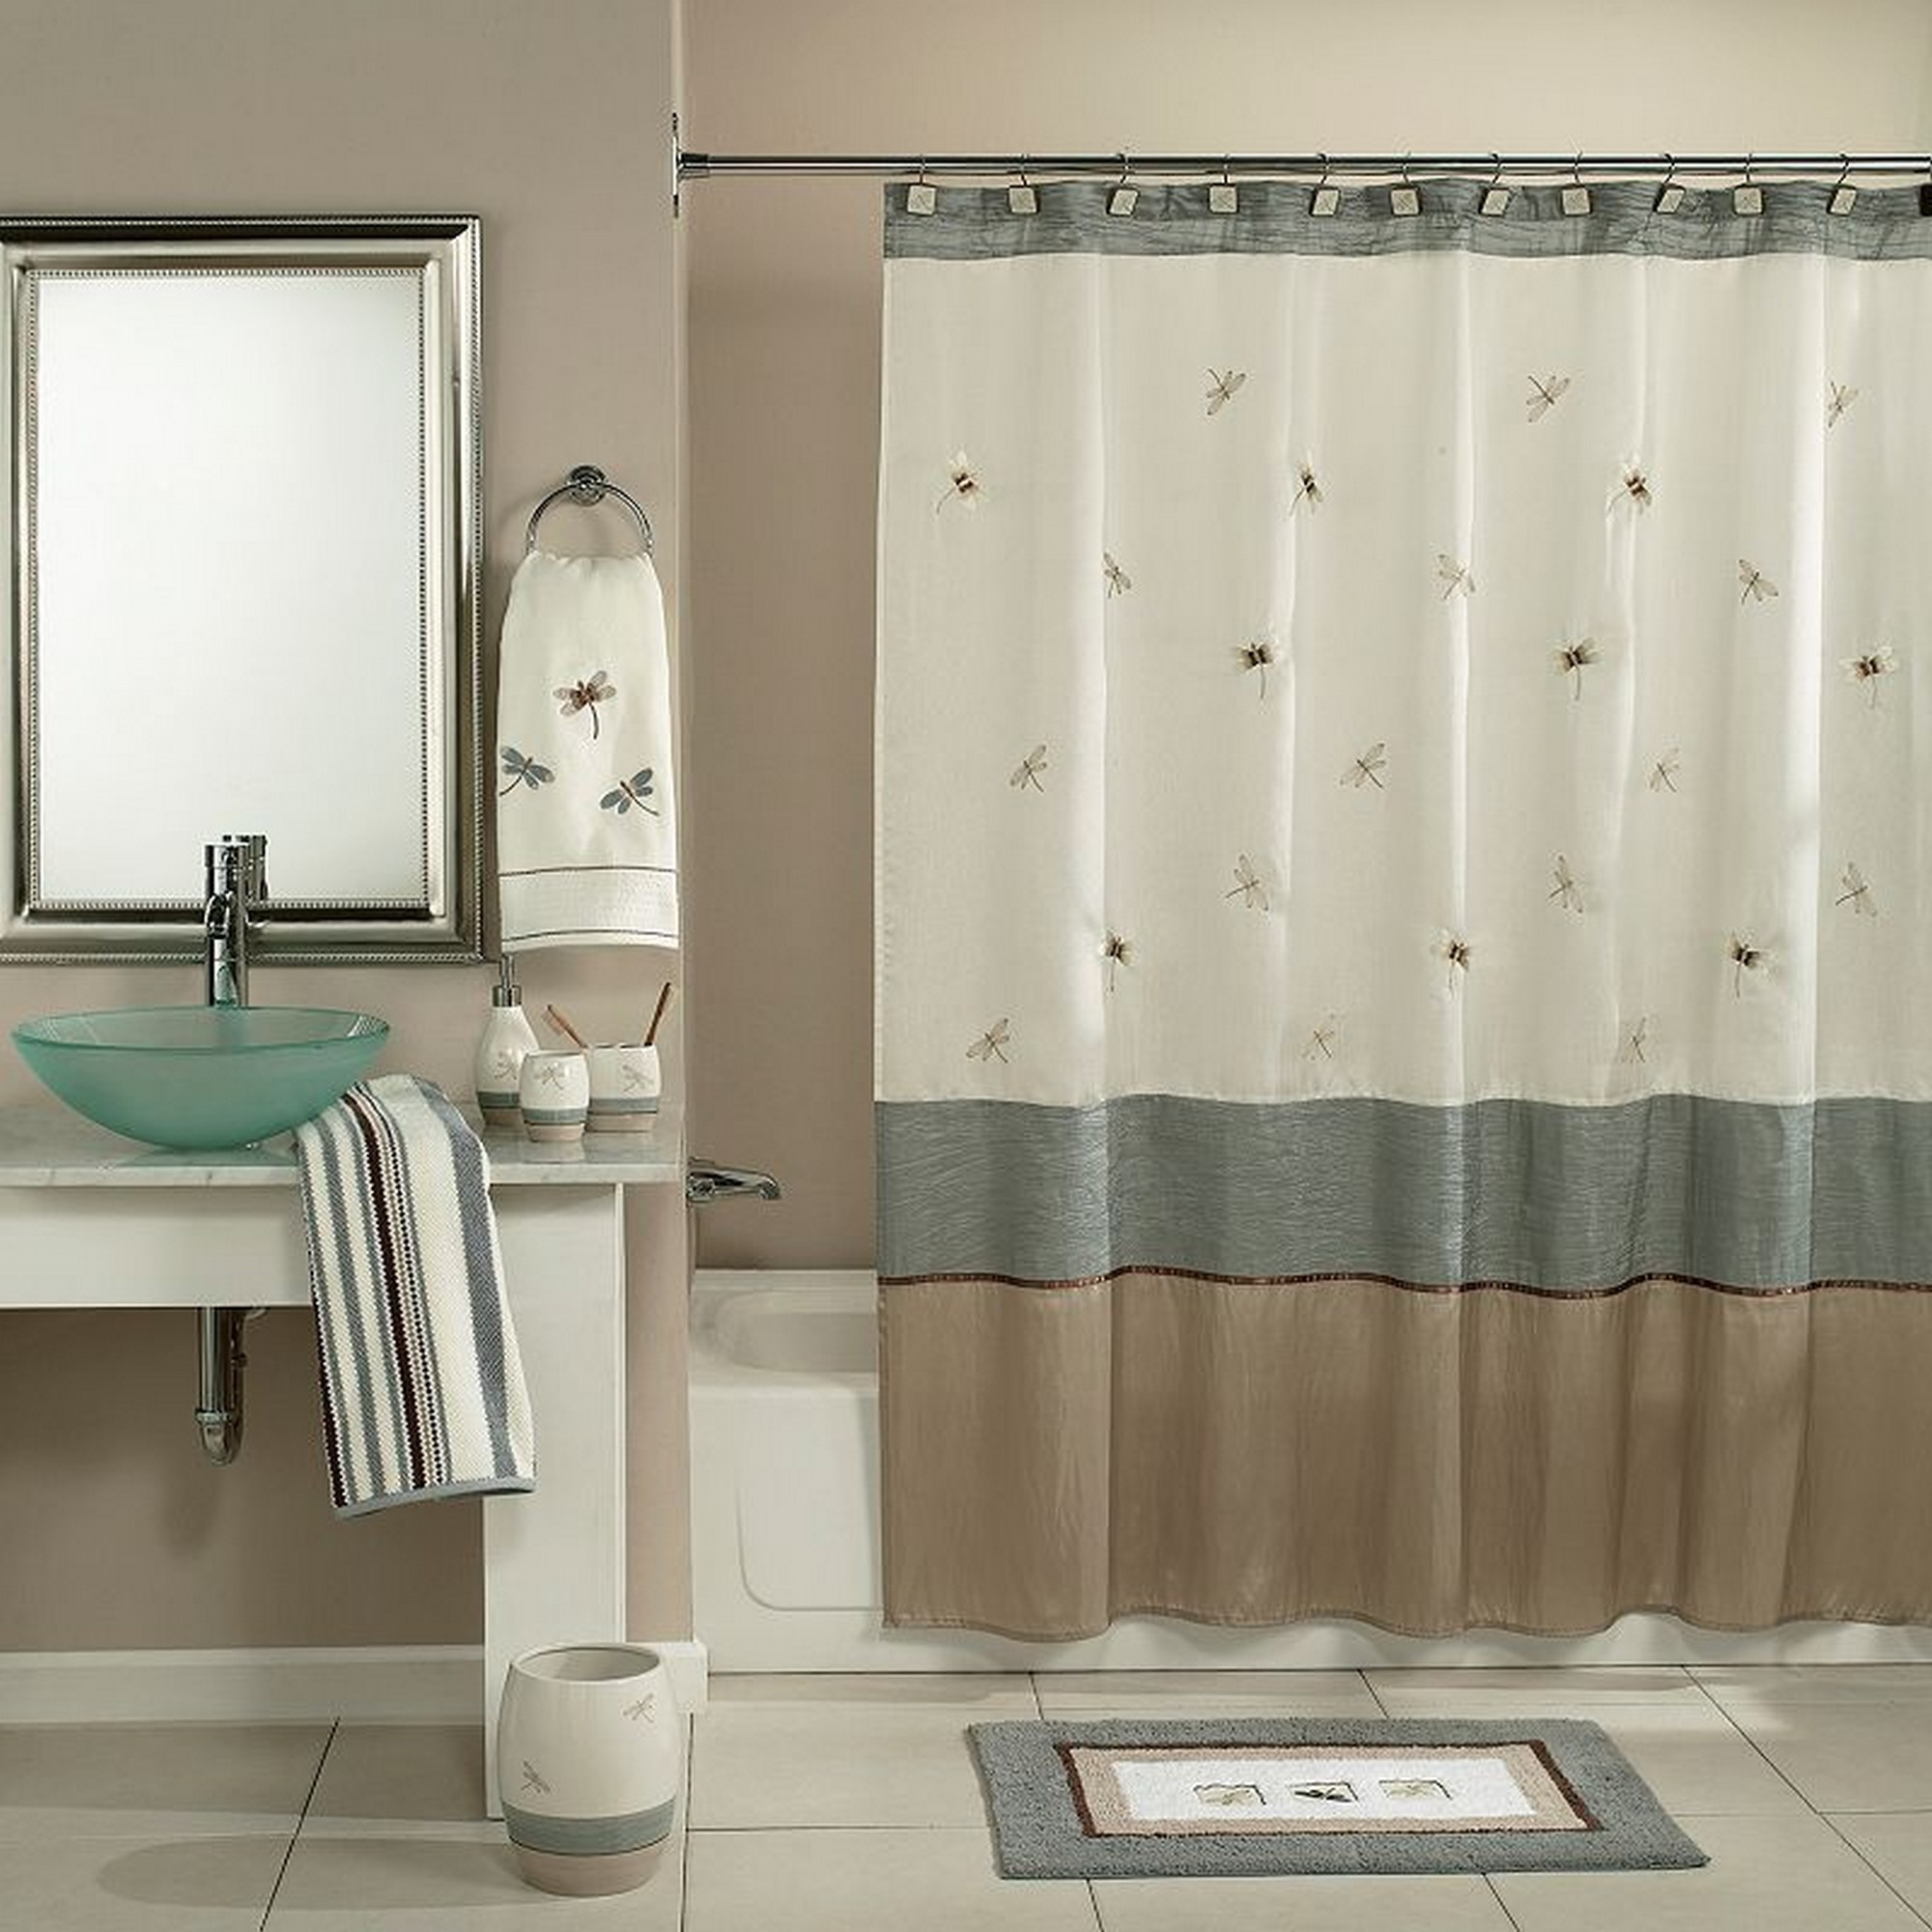 Construct Extra Long Linen Curtain Panels Bath Panel Extra Long Intended For Extra Long Door Curtain (Image 4 of 15)